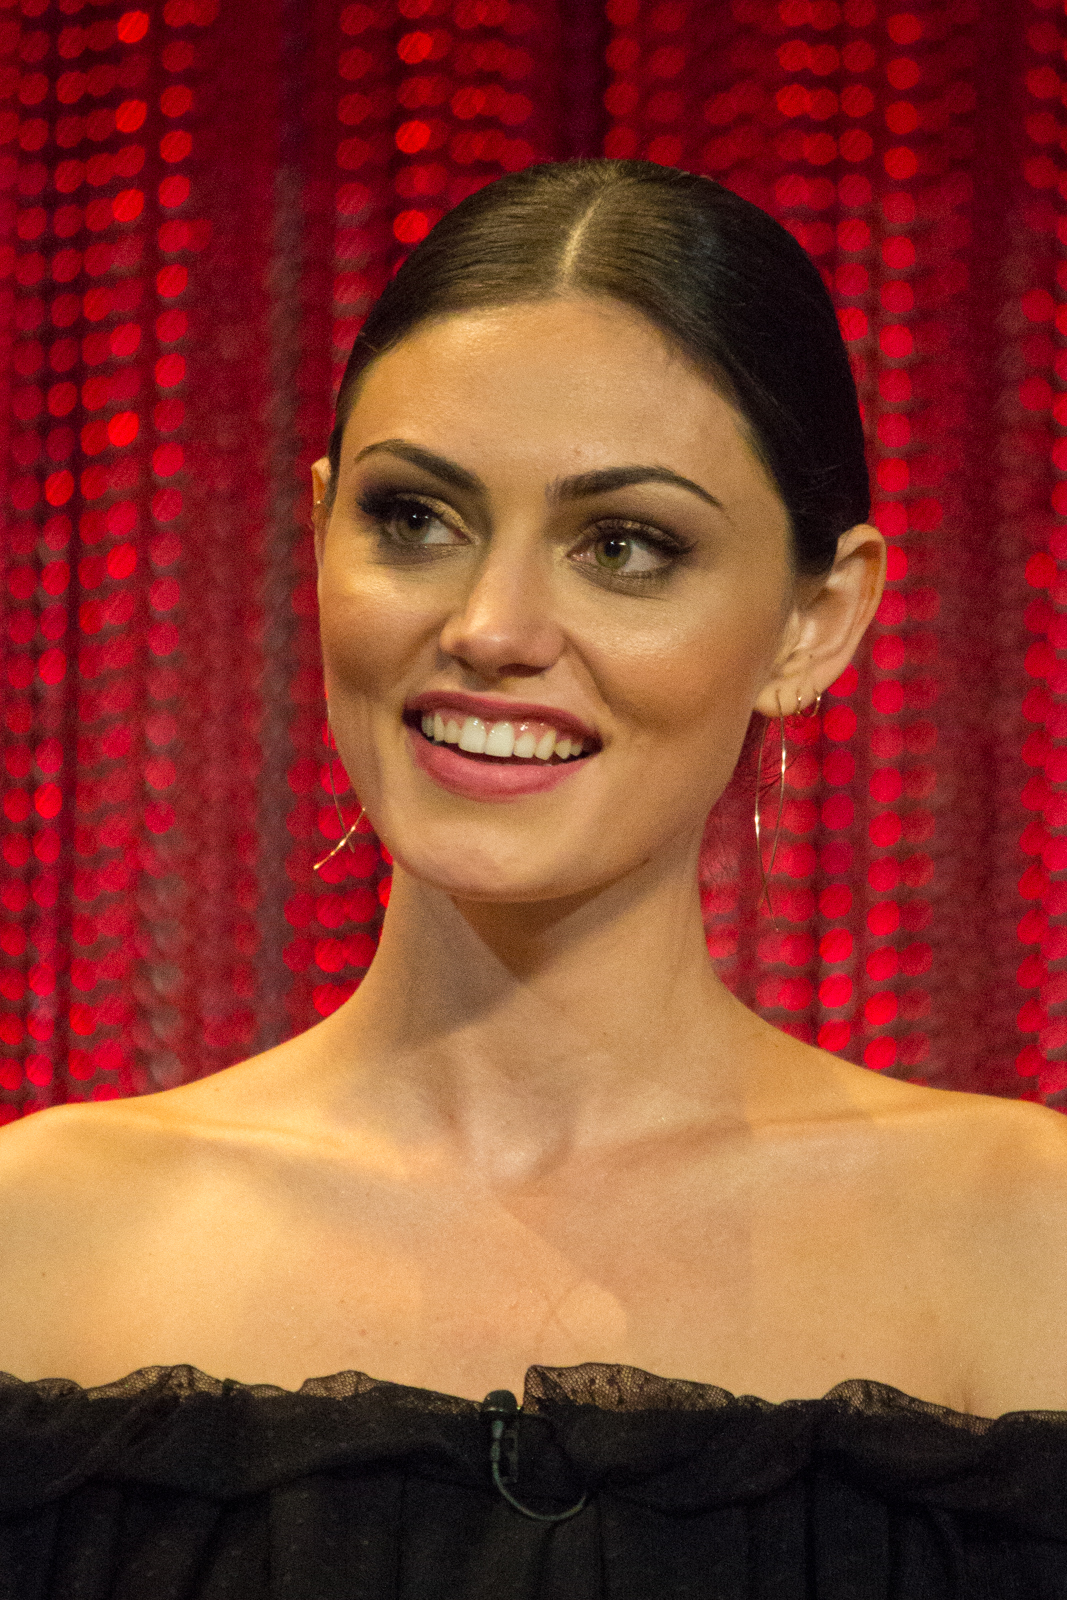 Pictures Phoebe Tonkin nude (66 foto and video), Pussy, Sideboobs, Instagram, braless 2019